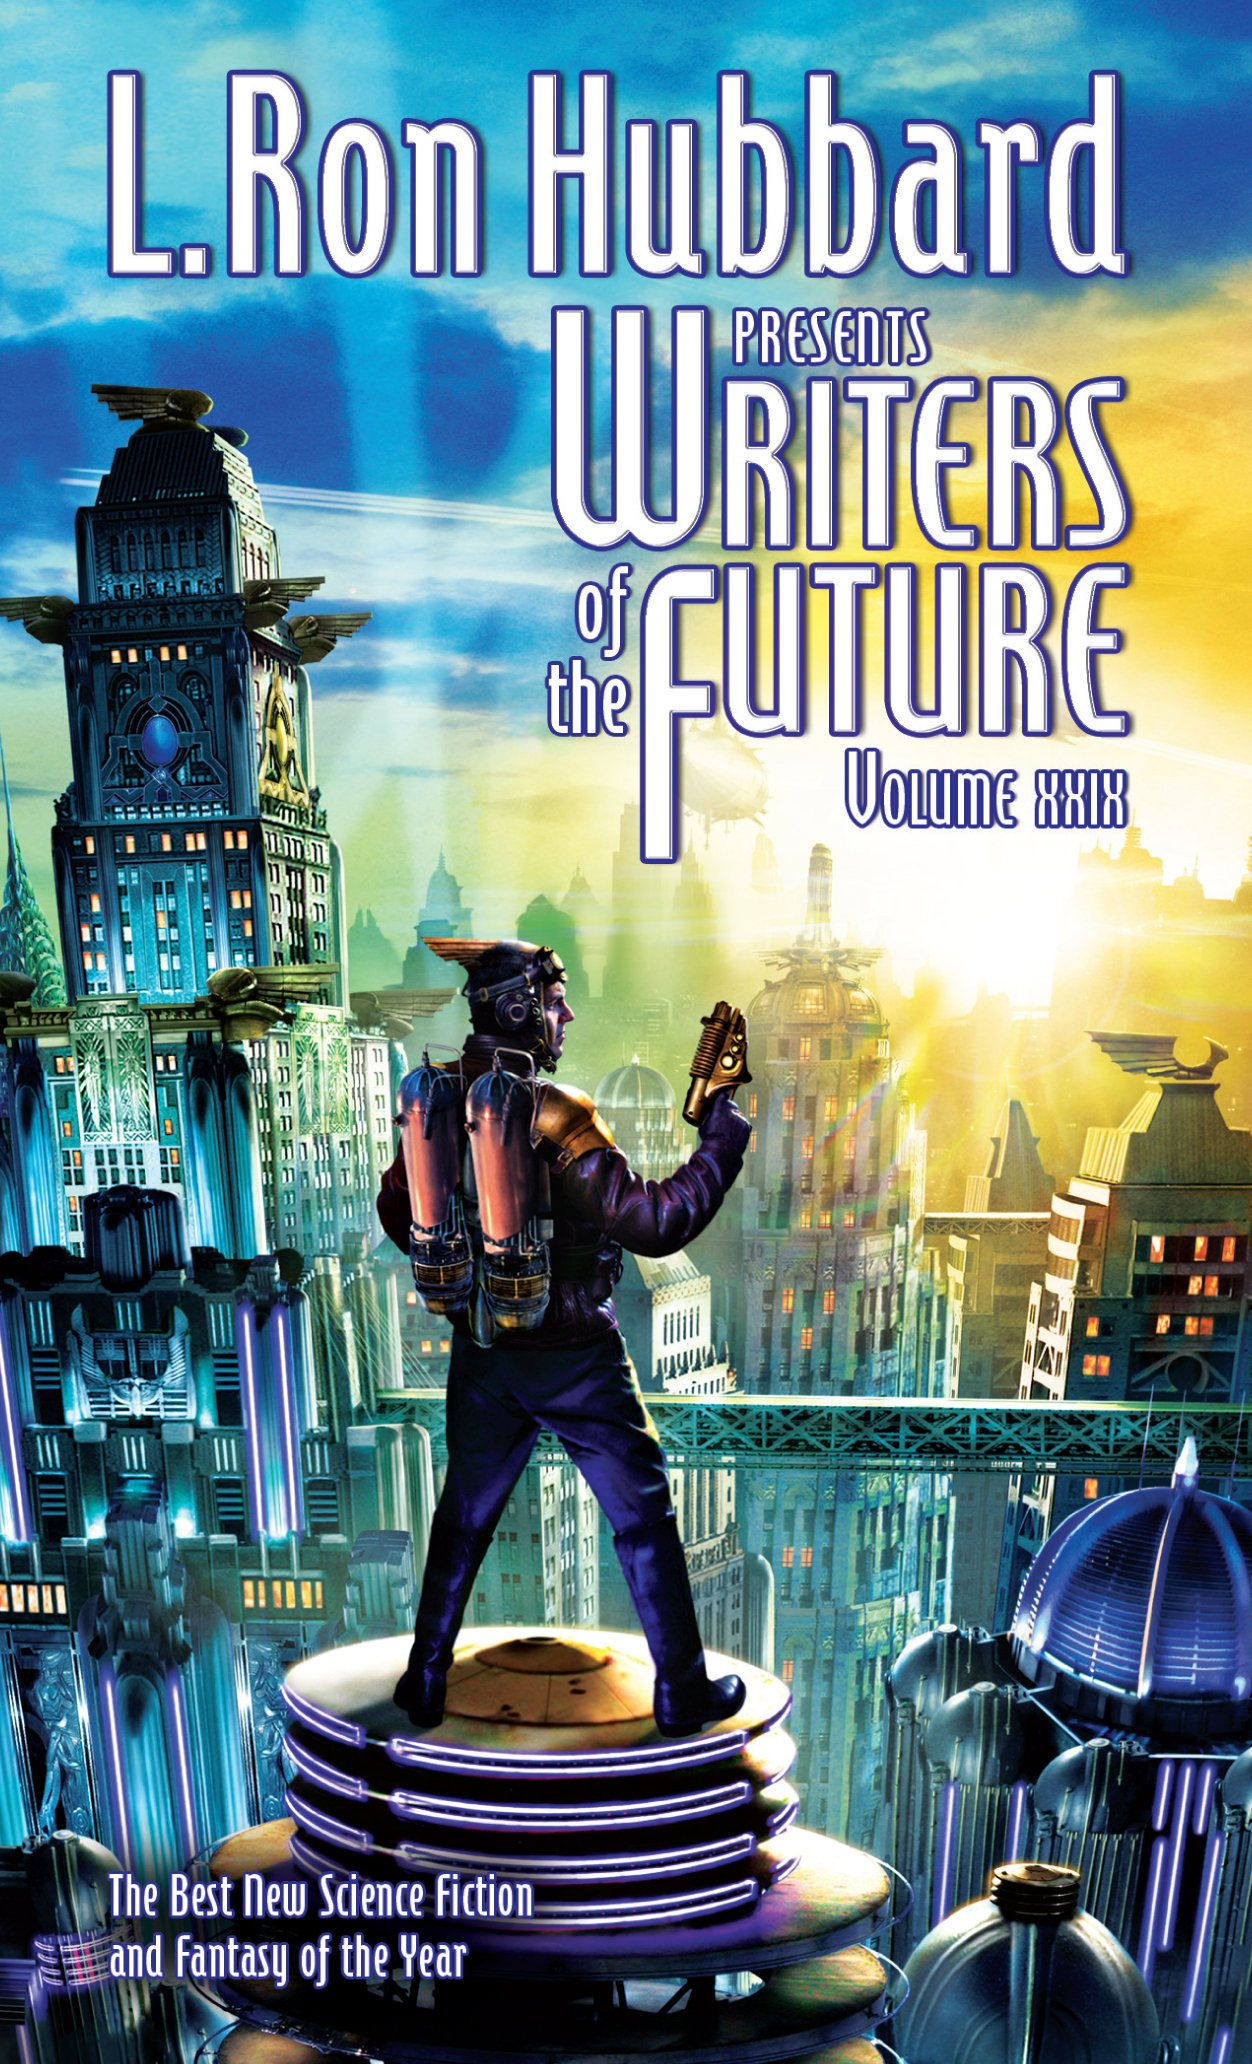 Writers of the Future Volume 29 (L. Ron Hubbard Presents Writers of the Future) pdf